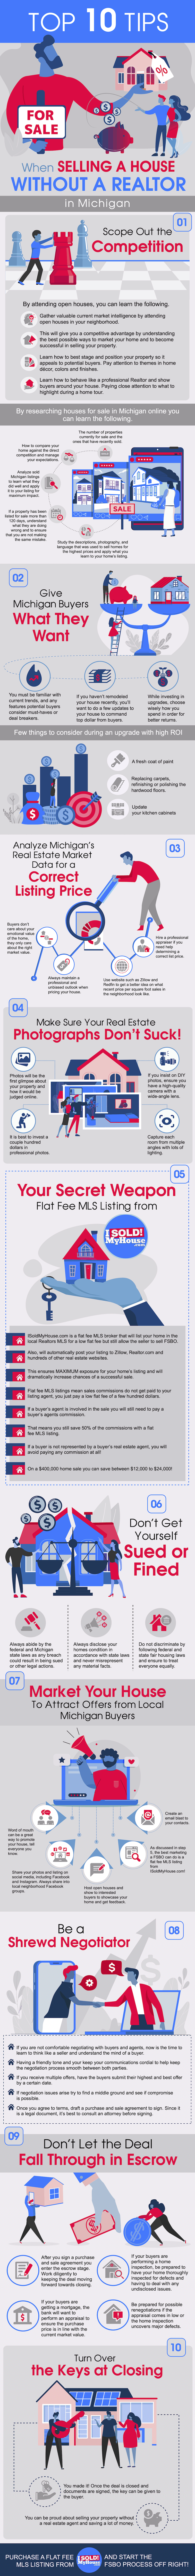 infographic of the 10 steps to sell a house in michigan without an agent